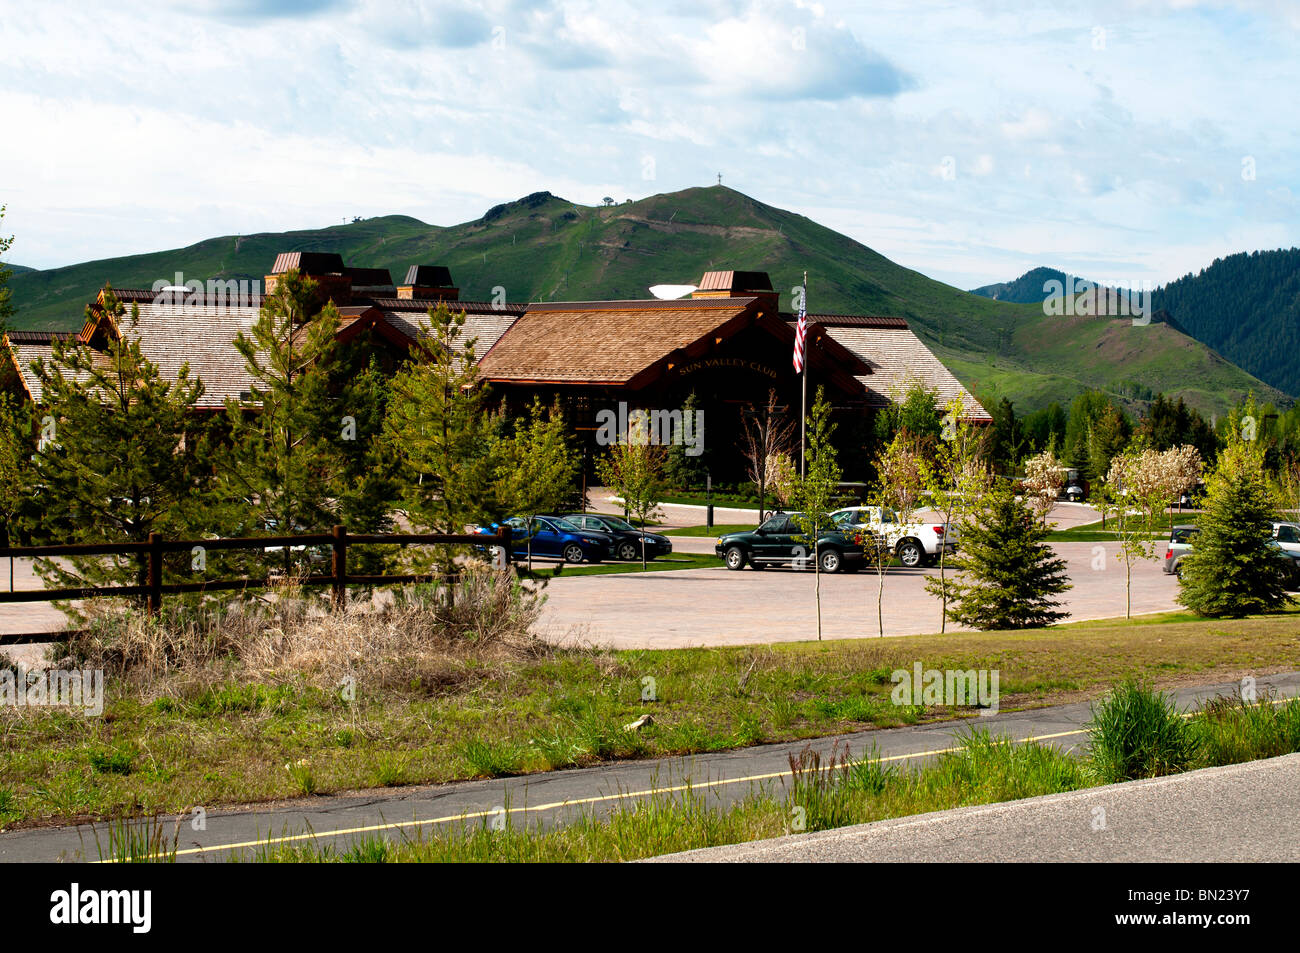 The new clubhouse at the Sun Valley Club - Stock Image